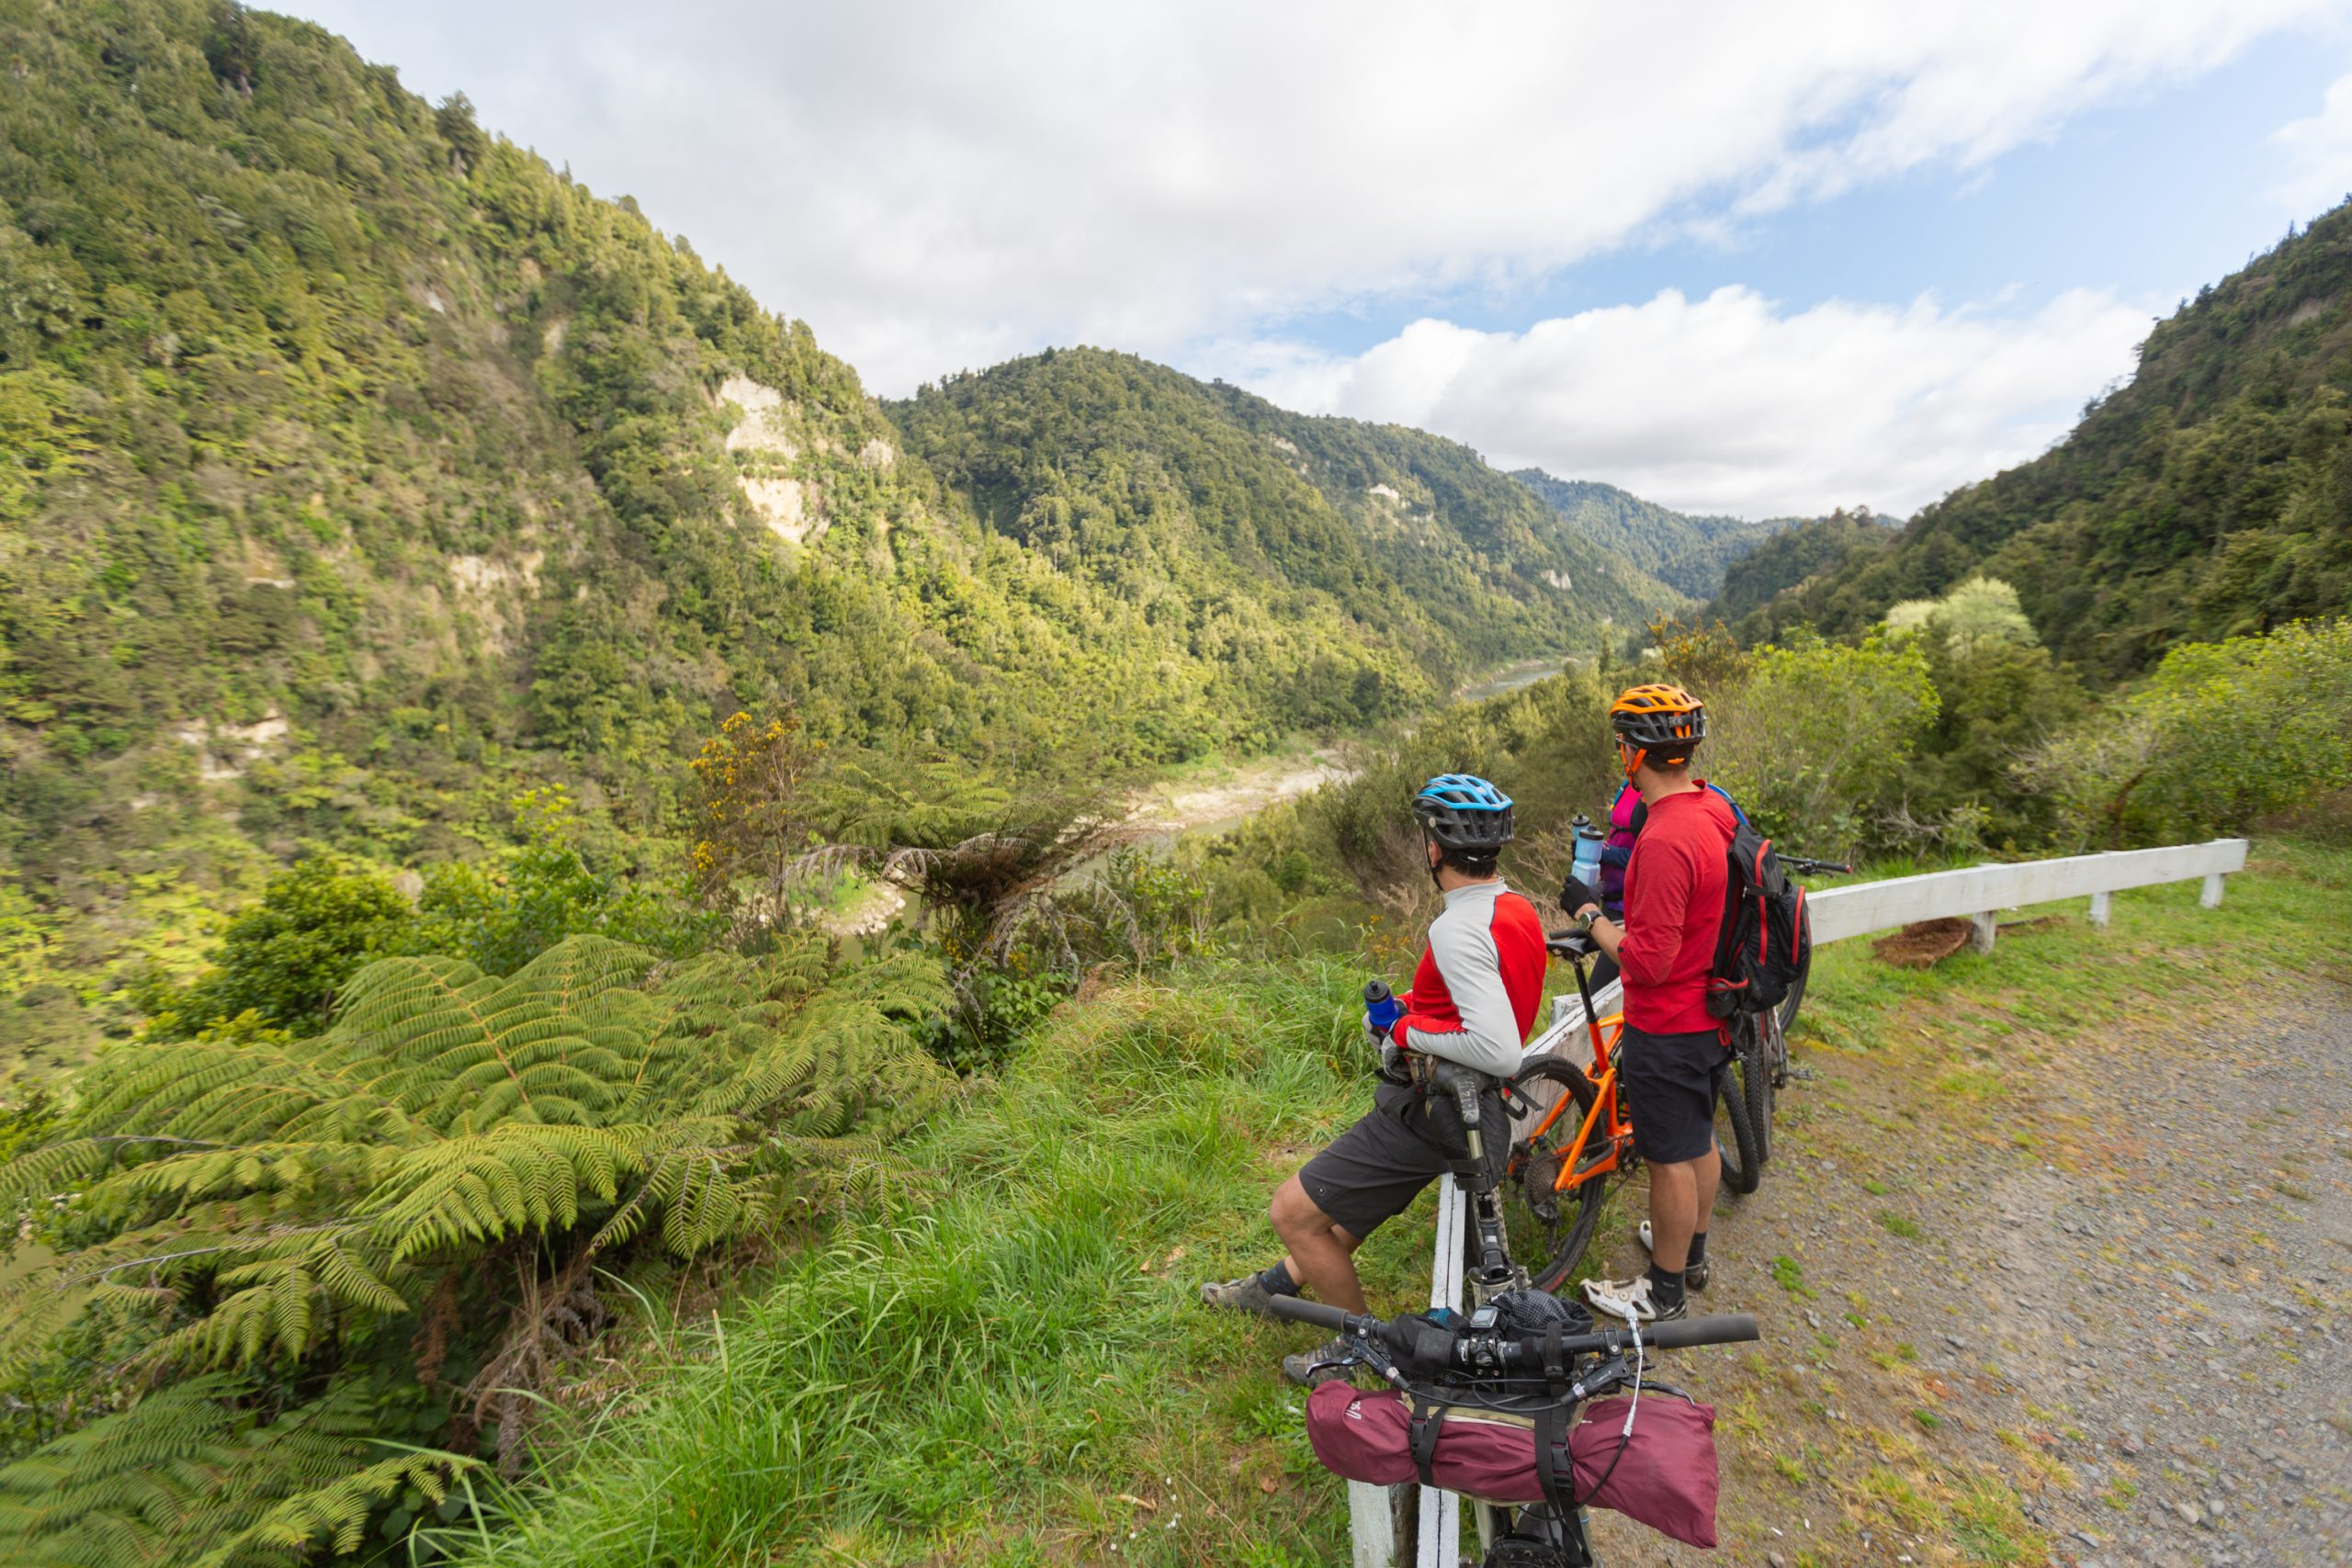 Two mountain bikers taking a break and enjoying the view of the Whanganui River valley